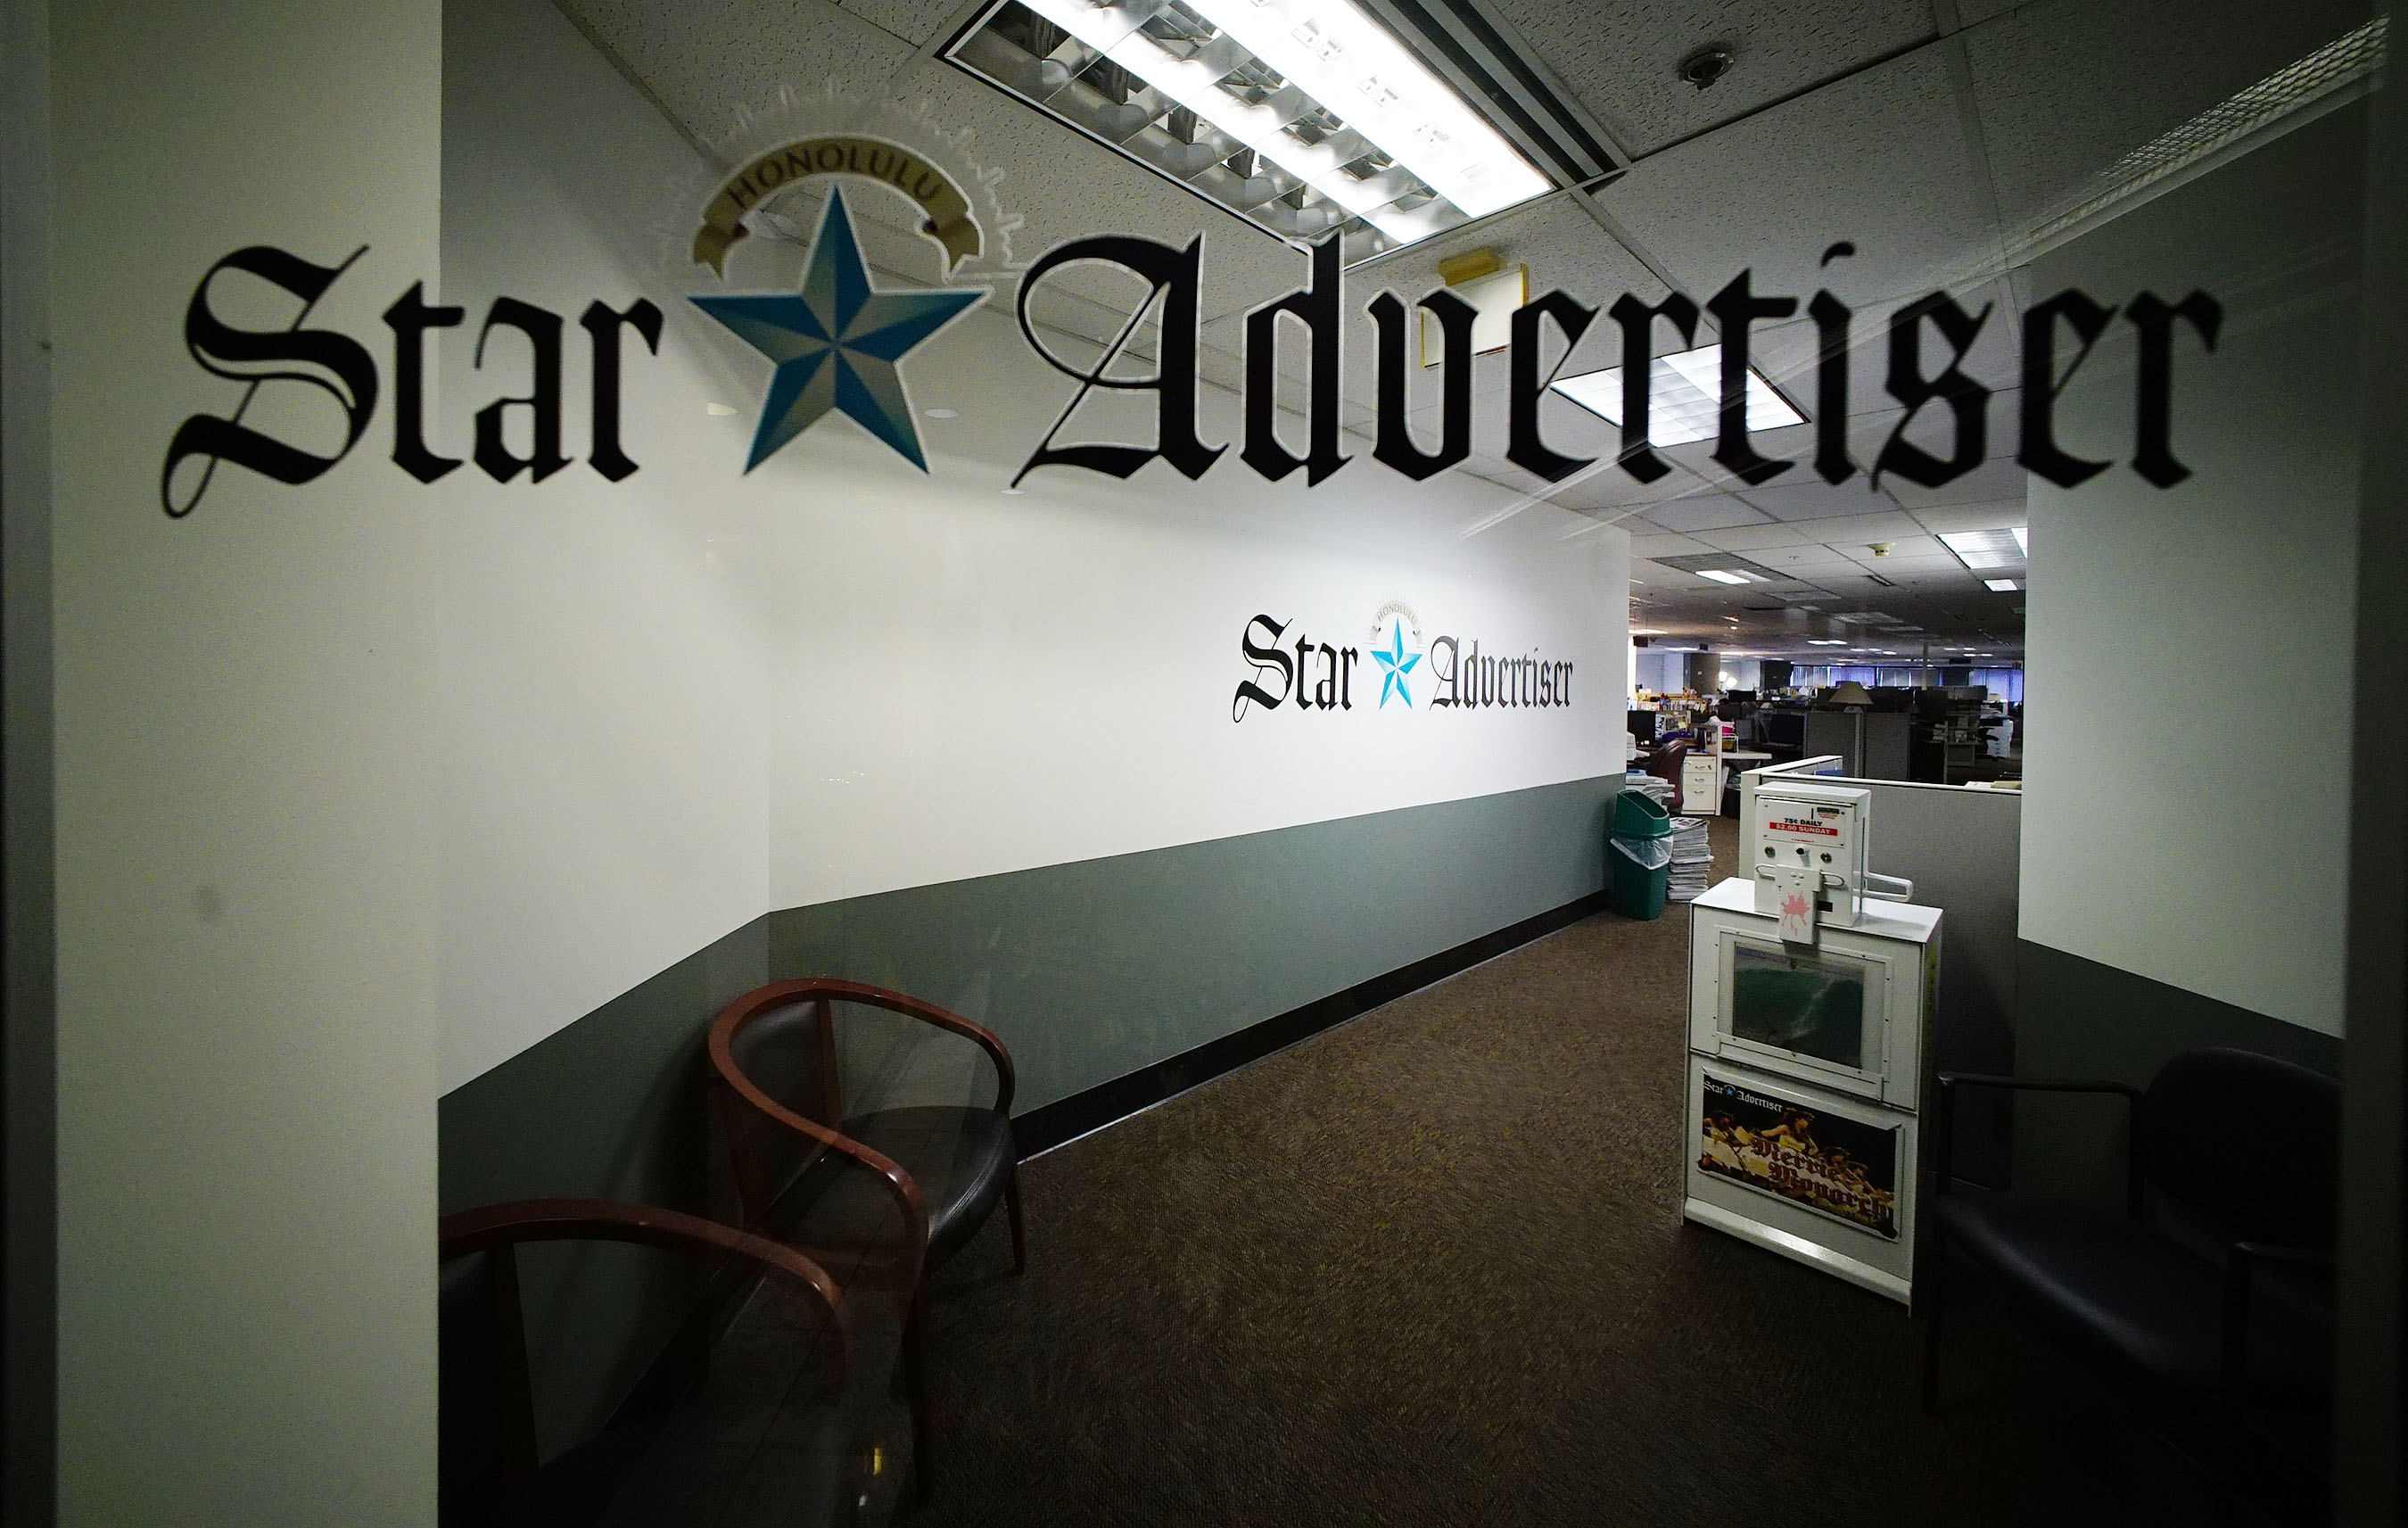 The Honolulu Star-Advertiser has been silent about its own financial ...